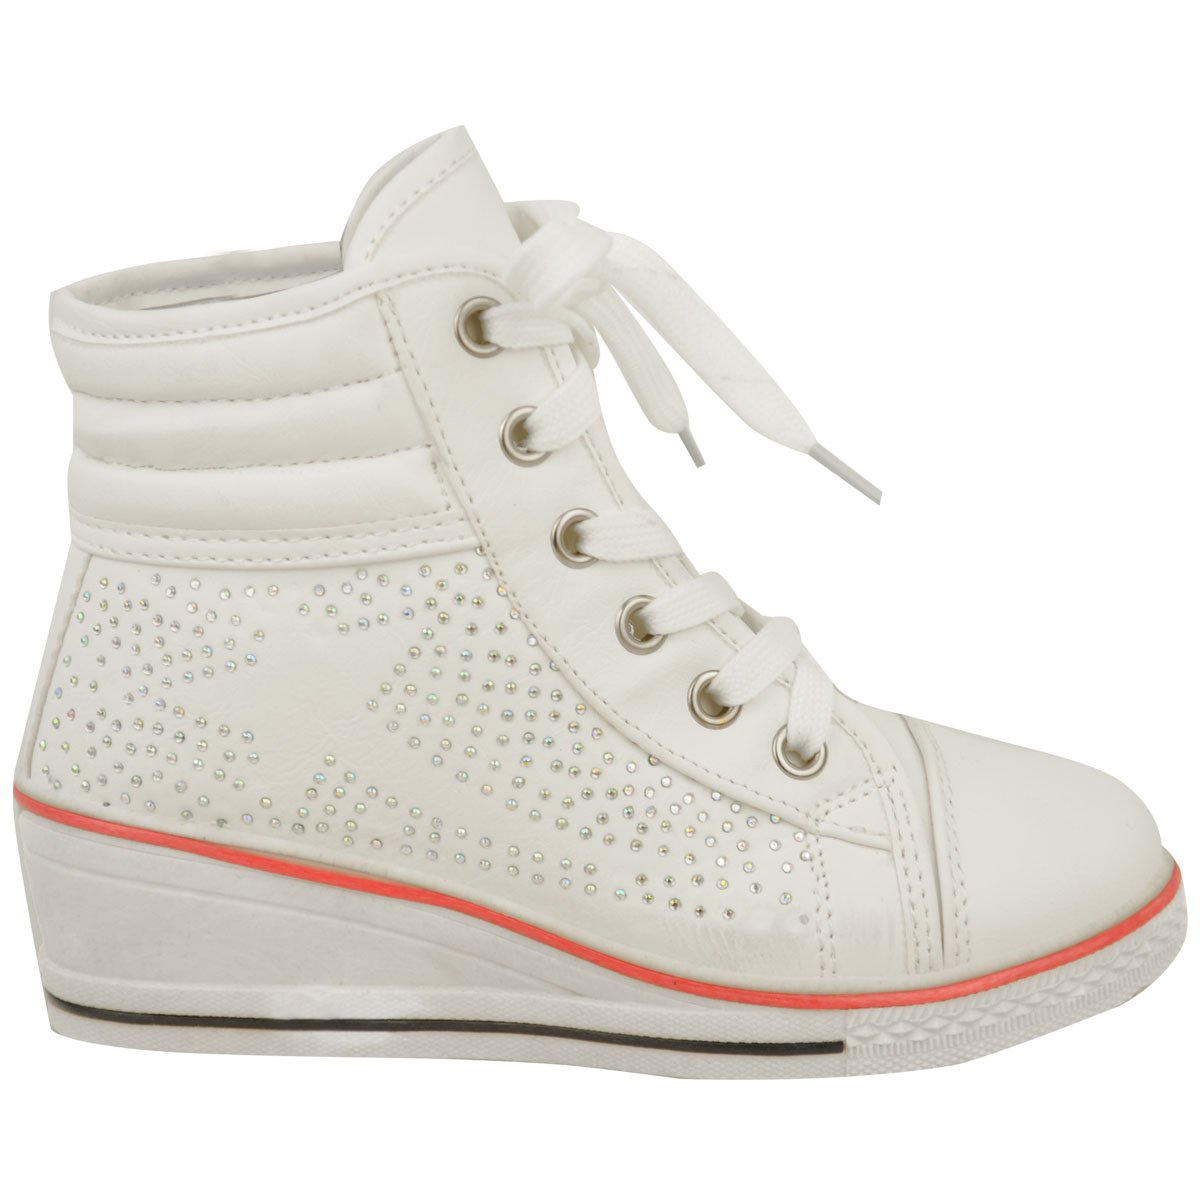 Fashion Thirsty Girls Kids Wedge Sneakers Lace Up Plimsolls Ankle Boots Diamante Trainers Shoes Size